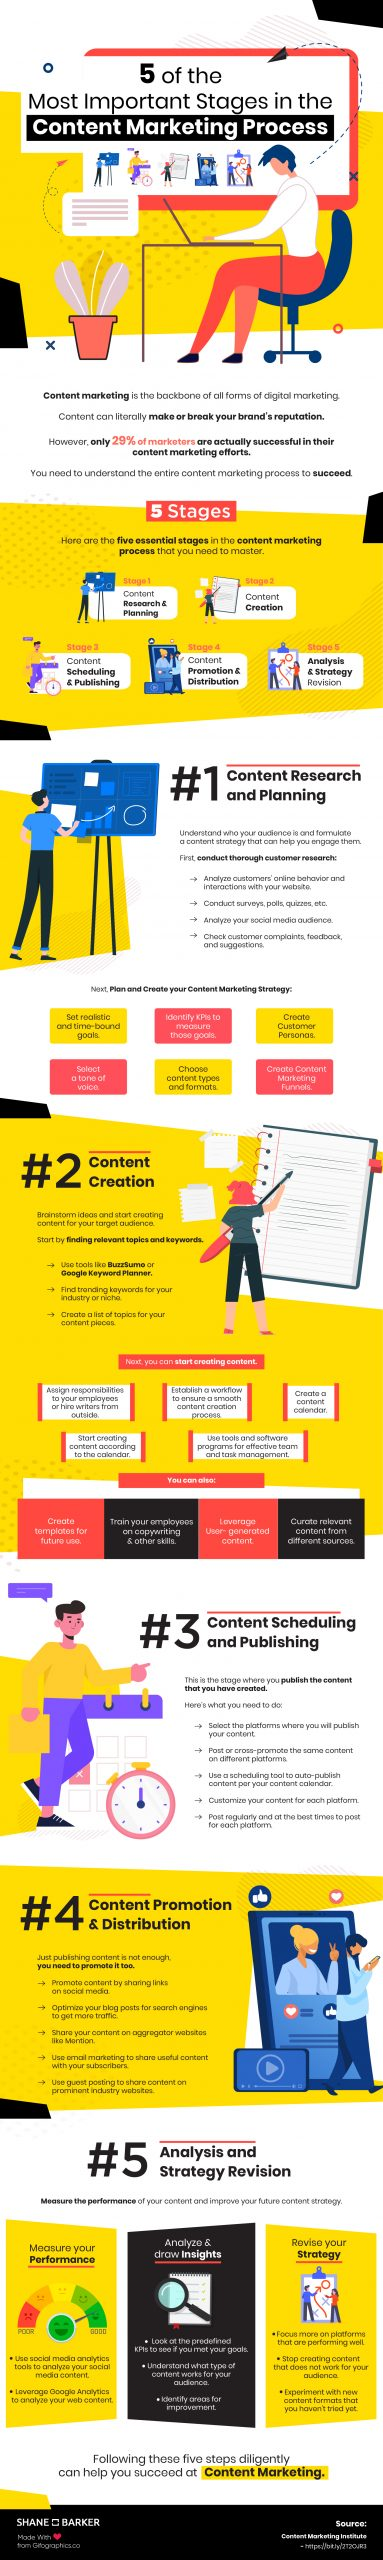 Infographic with the most important stages of the content marketing process.